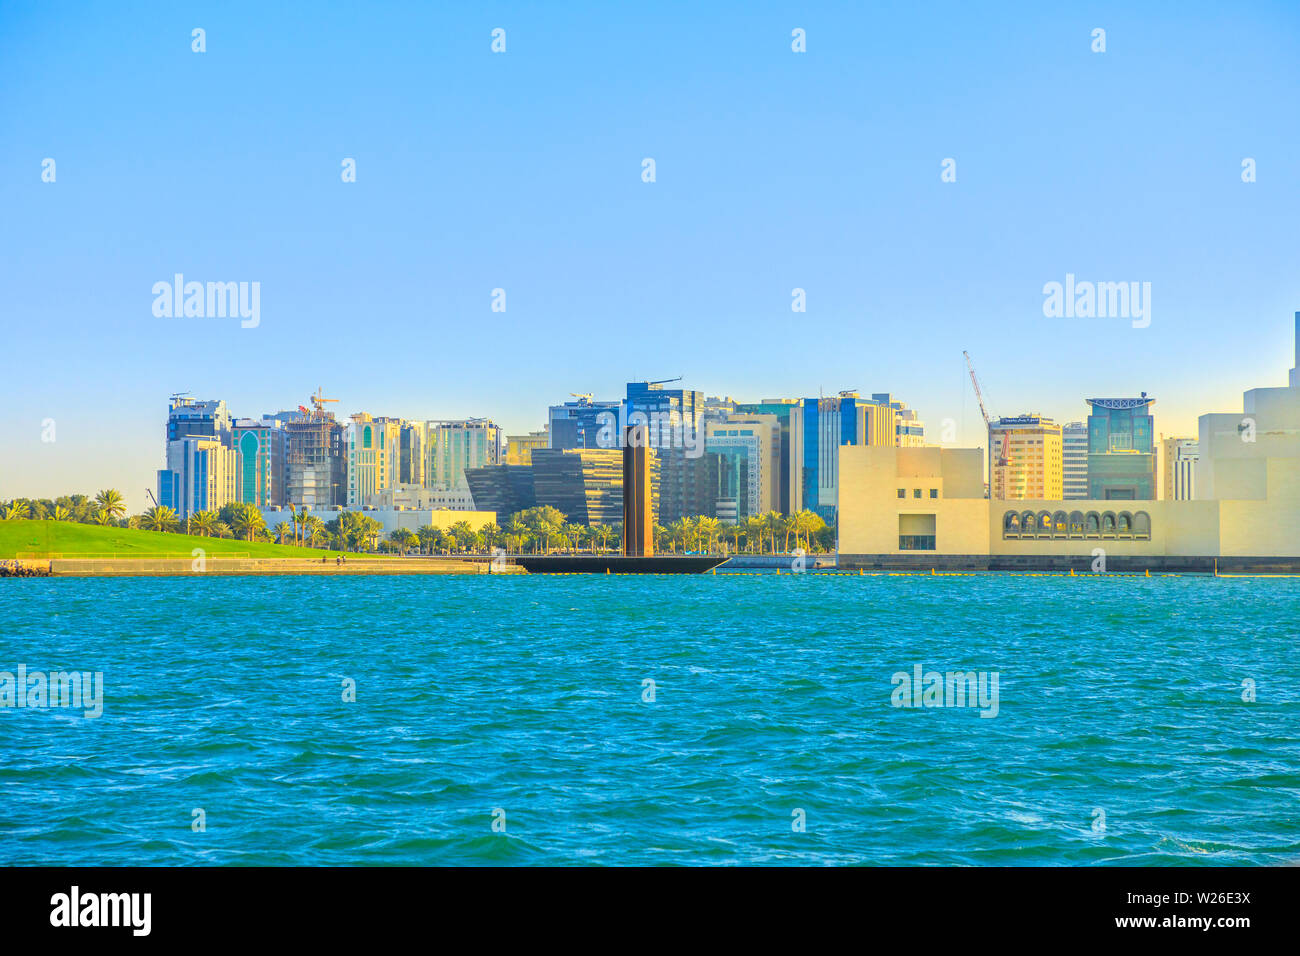 Doha, Qatar - February 20, 2019: Steel Obelisk, Museum of Islamic Art and Mia Park in Doha Bay from Dhow boat. Qatari capital in Middle East, Arabian Stock Photo